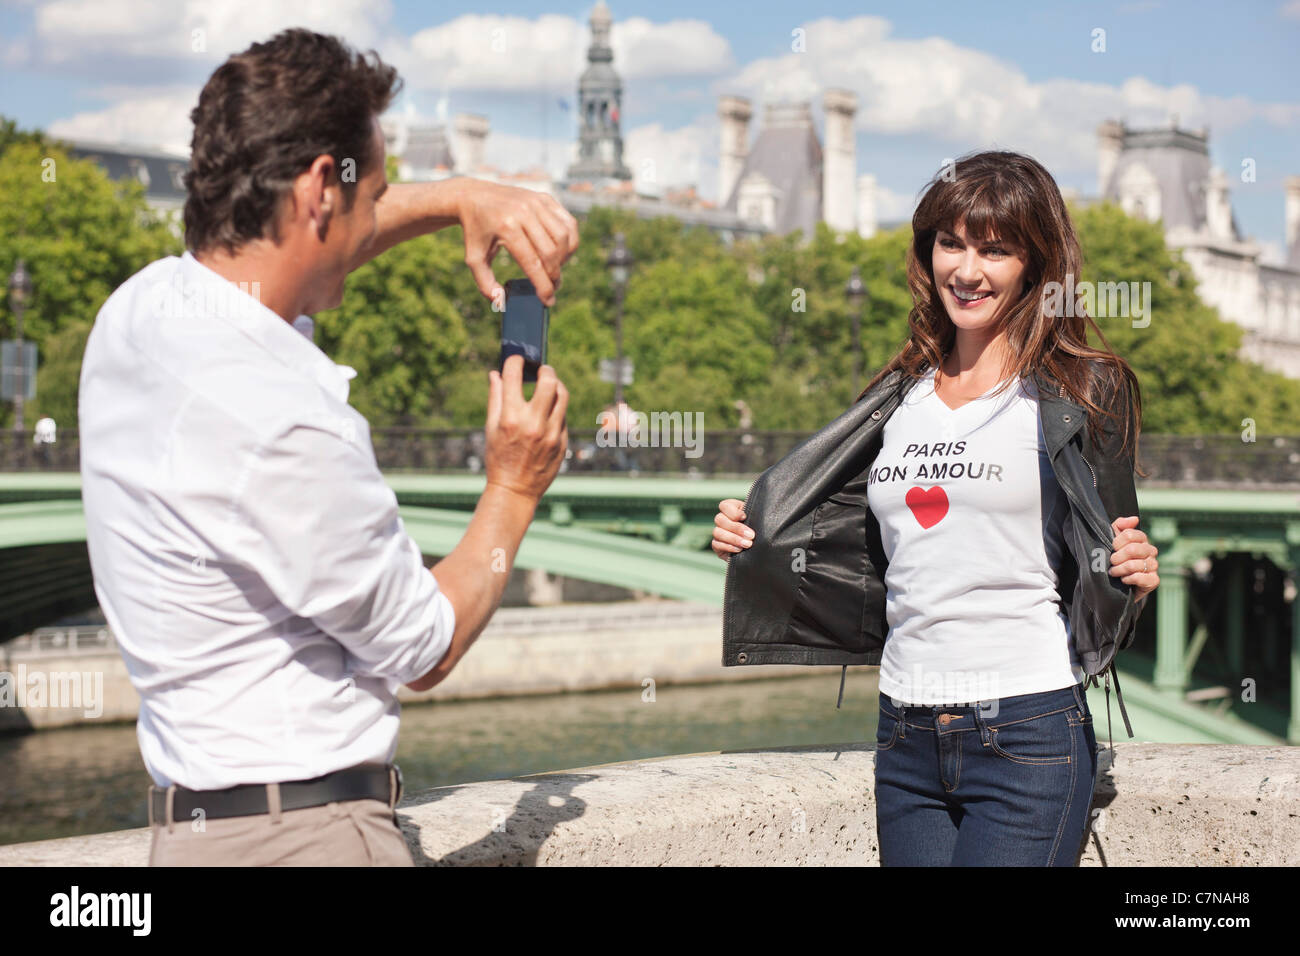 Man taking a picture of a woman with a mobile phone, Seine River, Paris, Ile-de-France, France - Stock Image